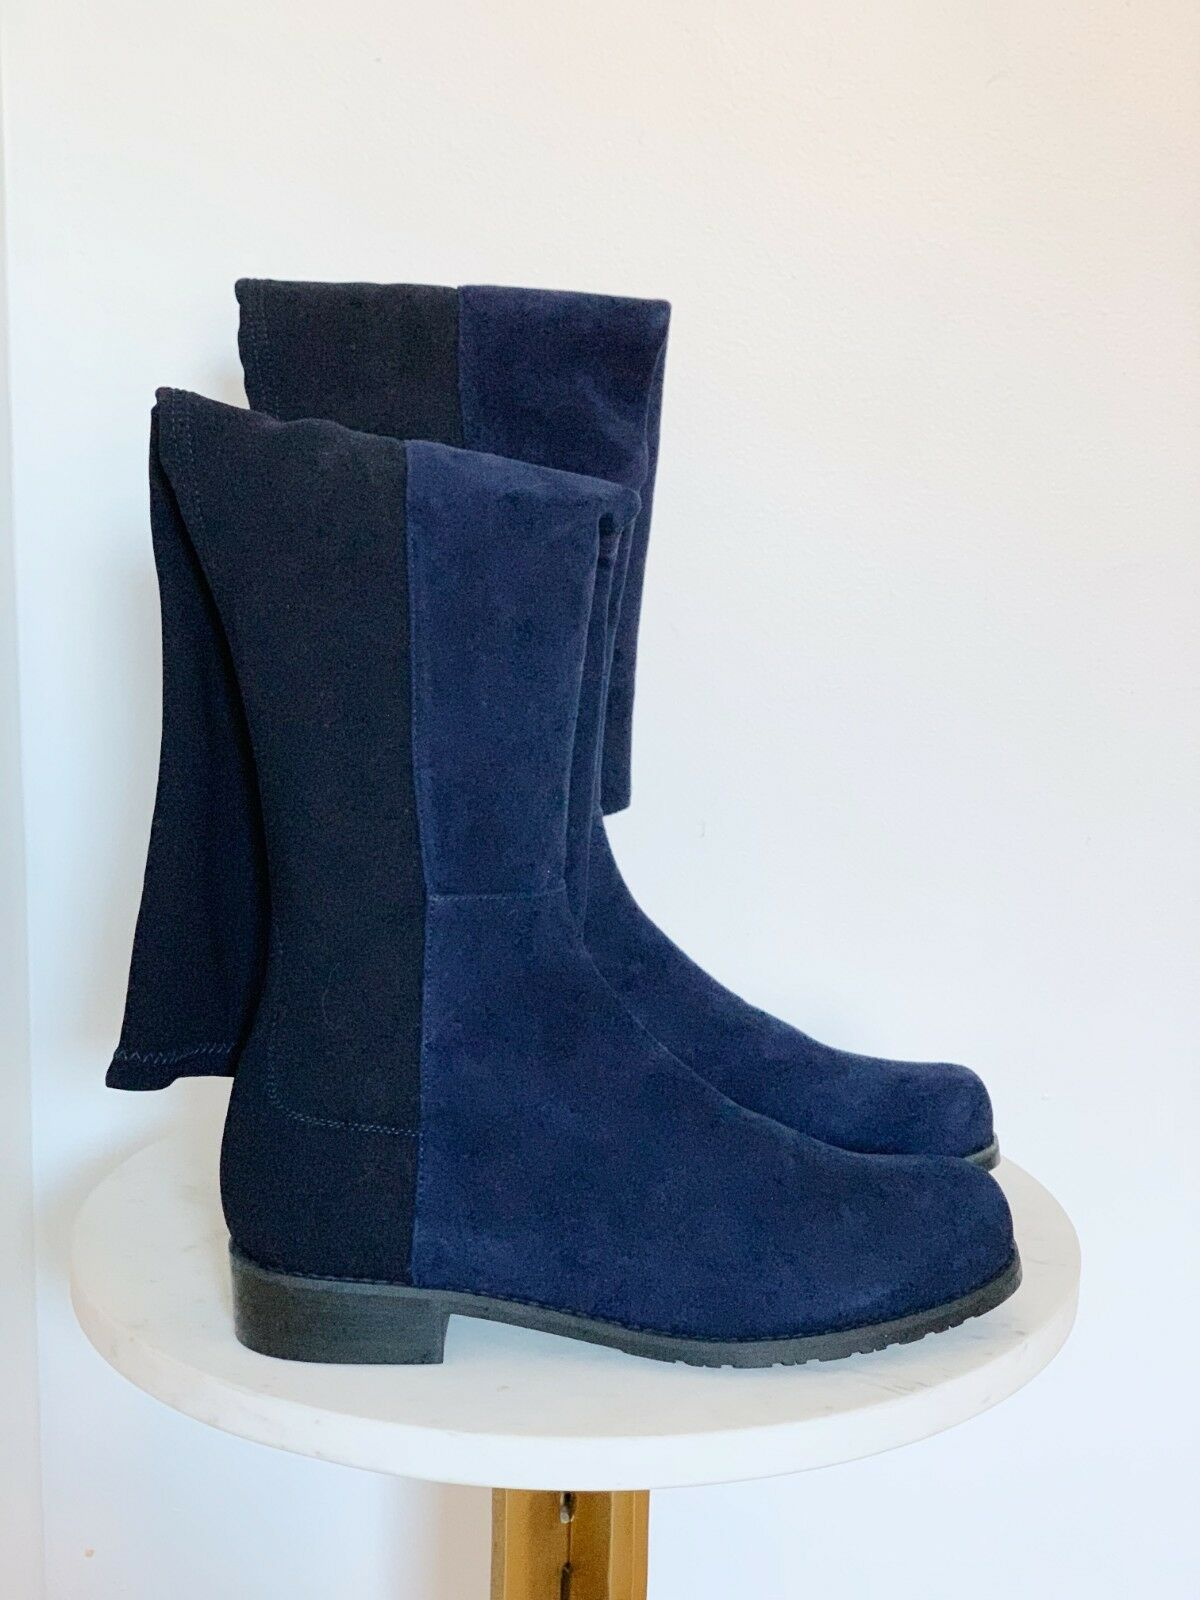 NIB Stuart Weitzman Weitzman Weitzman Suede 5050 Over The Knee Boot sz US 6.5 MSRP  655 2a2633